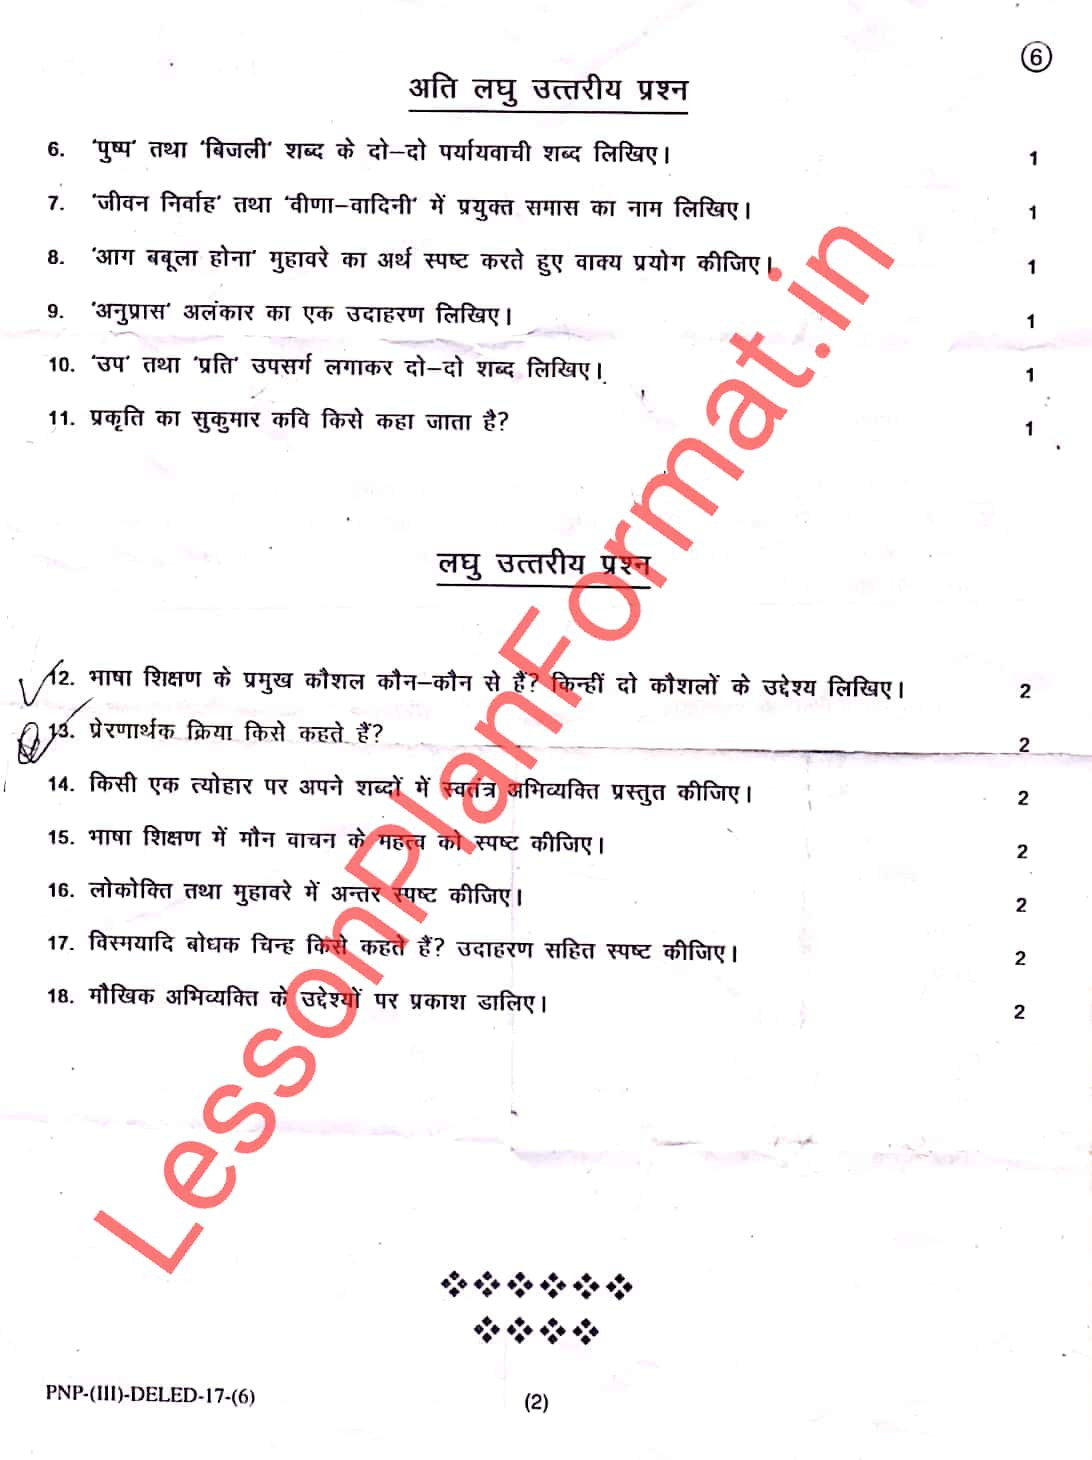 UP Deled 3rd Semester Hindi Question Paper 2019